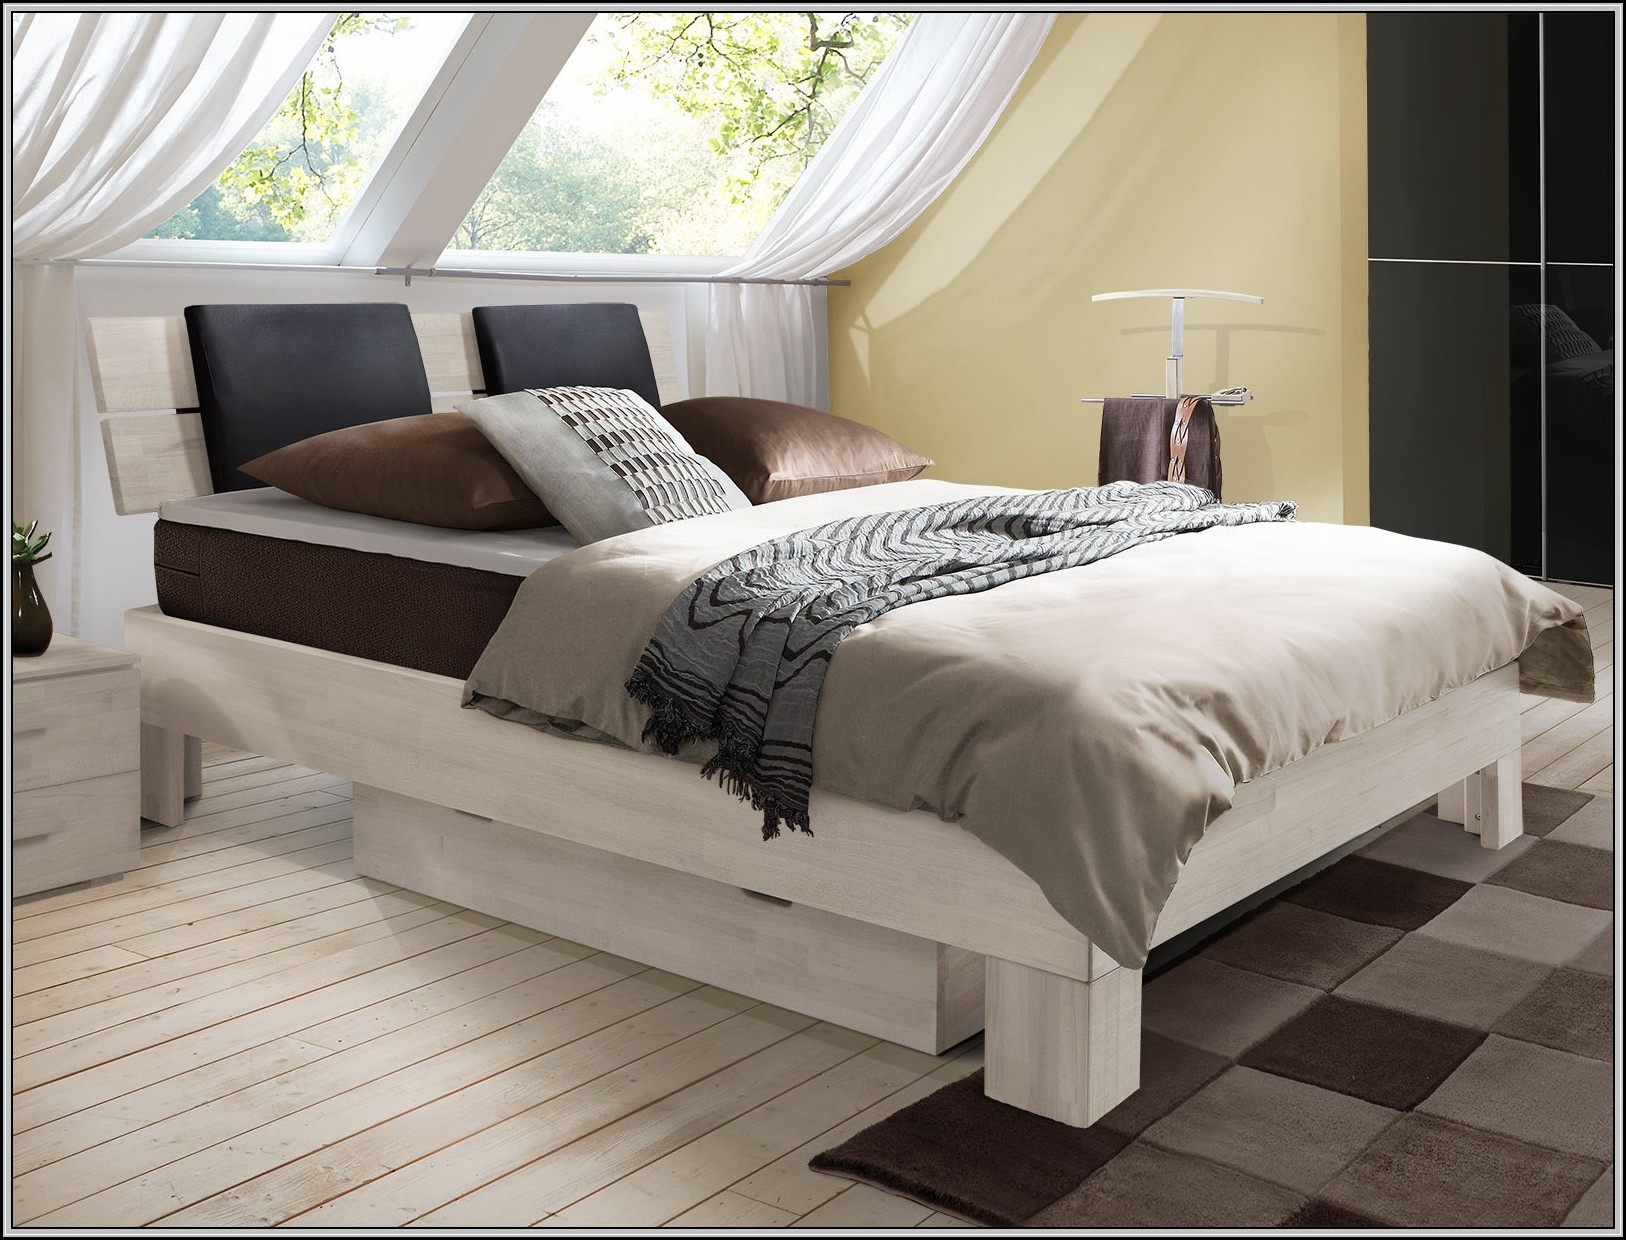 bett 160x200 welche matratze betten house und dekor galerie xp1o6vmwdj. Black Bedroom Furniture Sets. Home Design Ideas